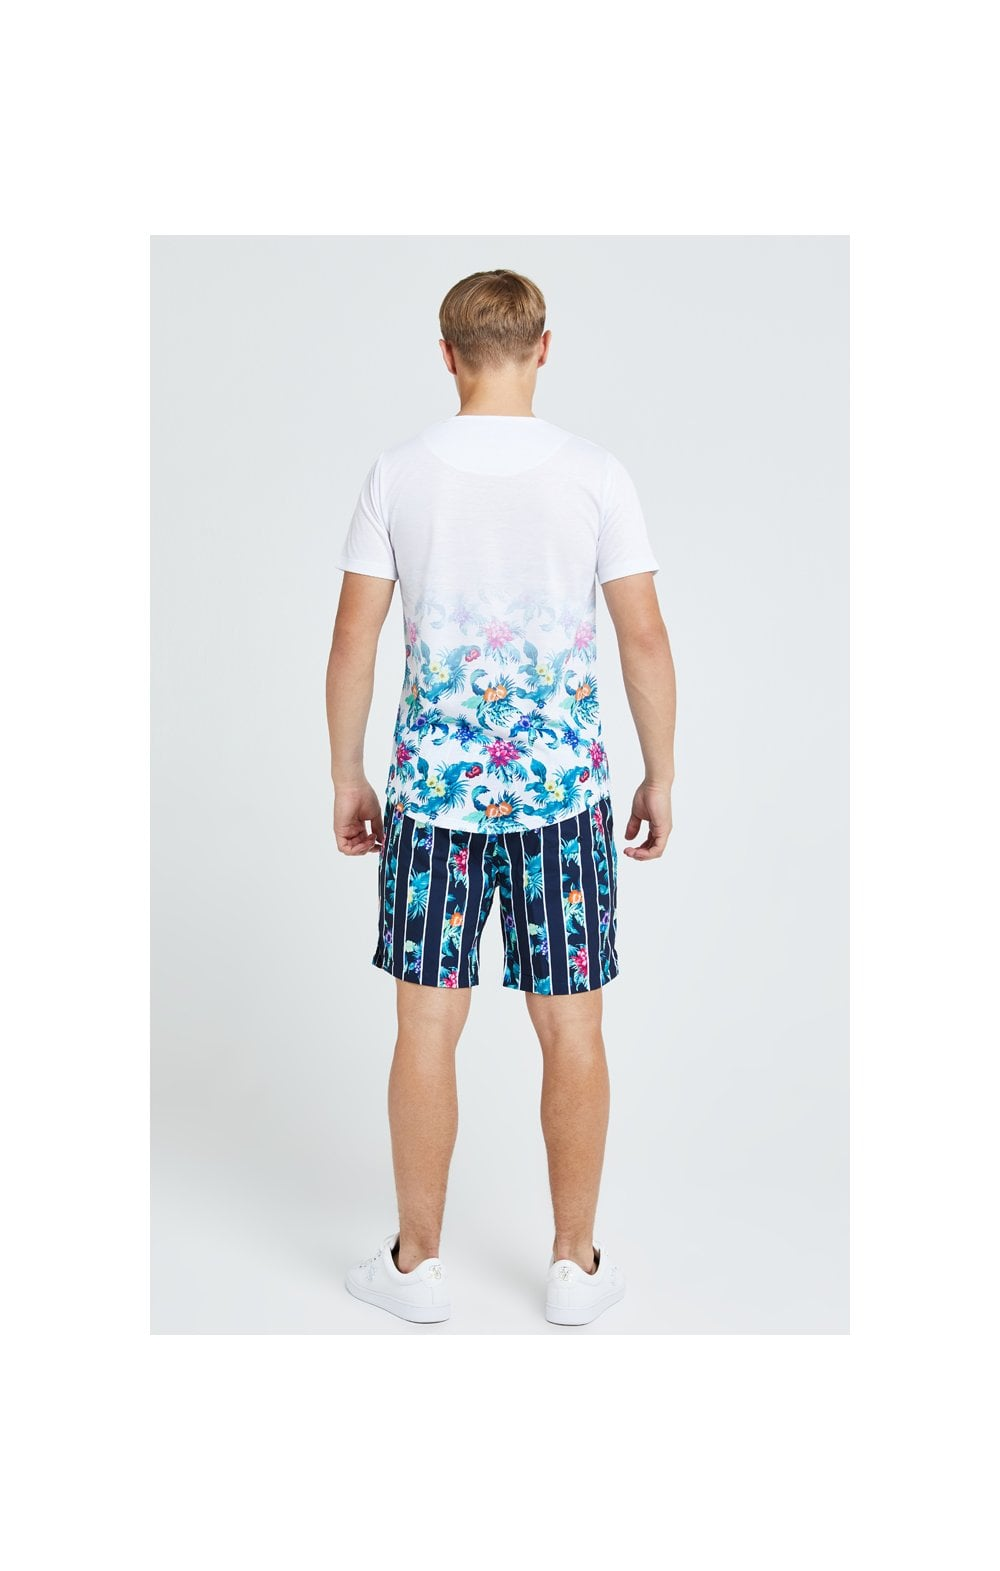 Illusive London Floral Stripe Swim Shorts - Navy & Floral (6)